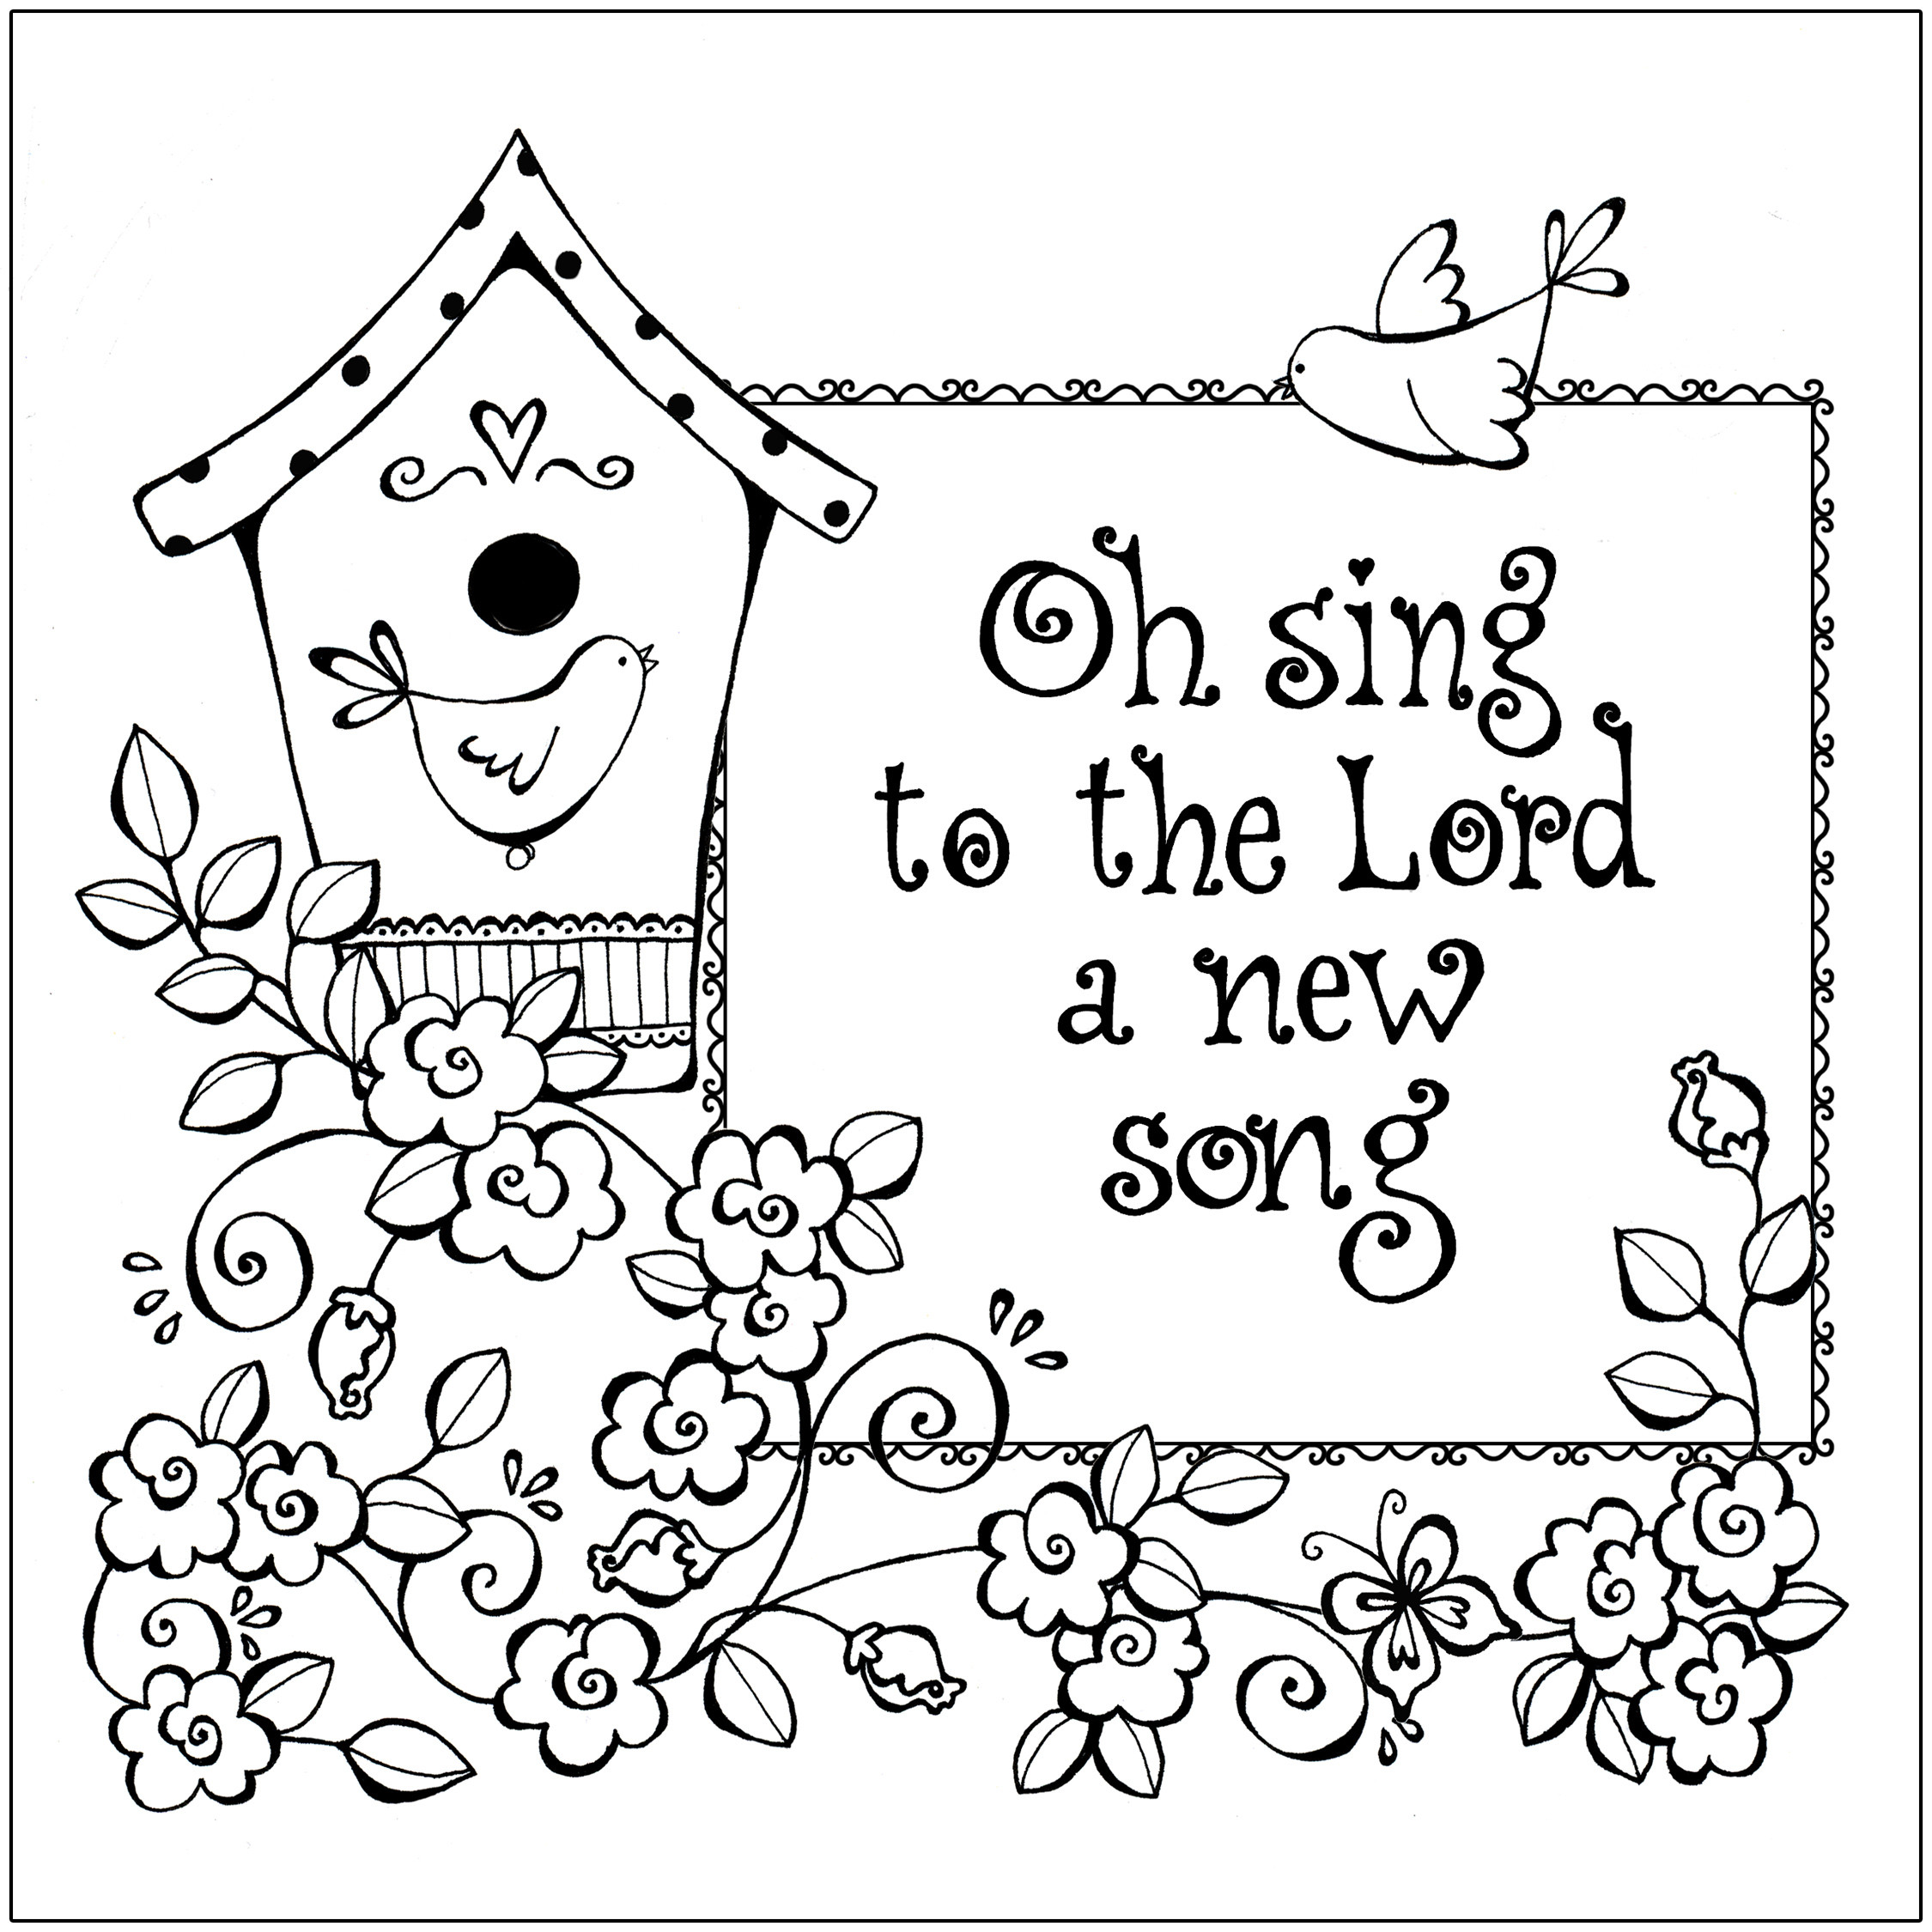 Free Printable Bible Coloring Pages With Scriptures  Free Printable Christian Coloring Pages for Kids Best